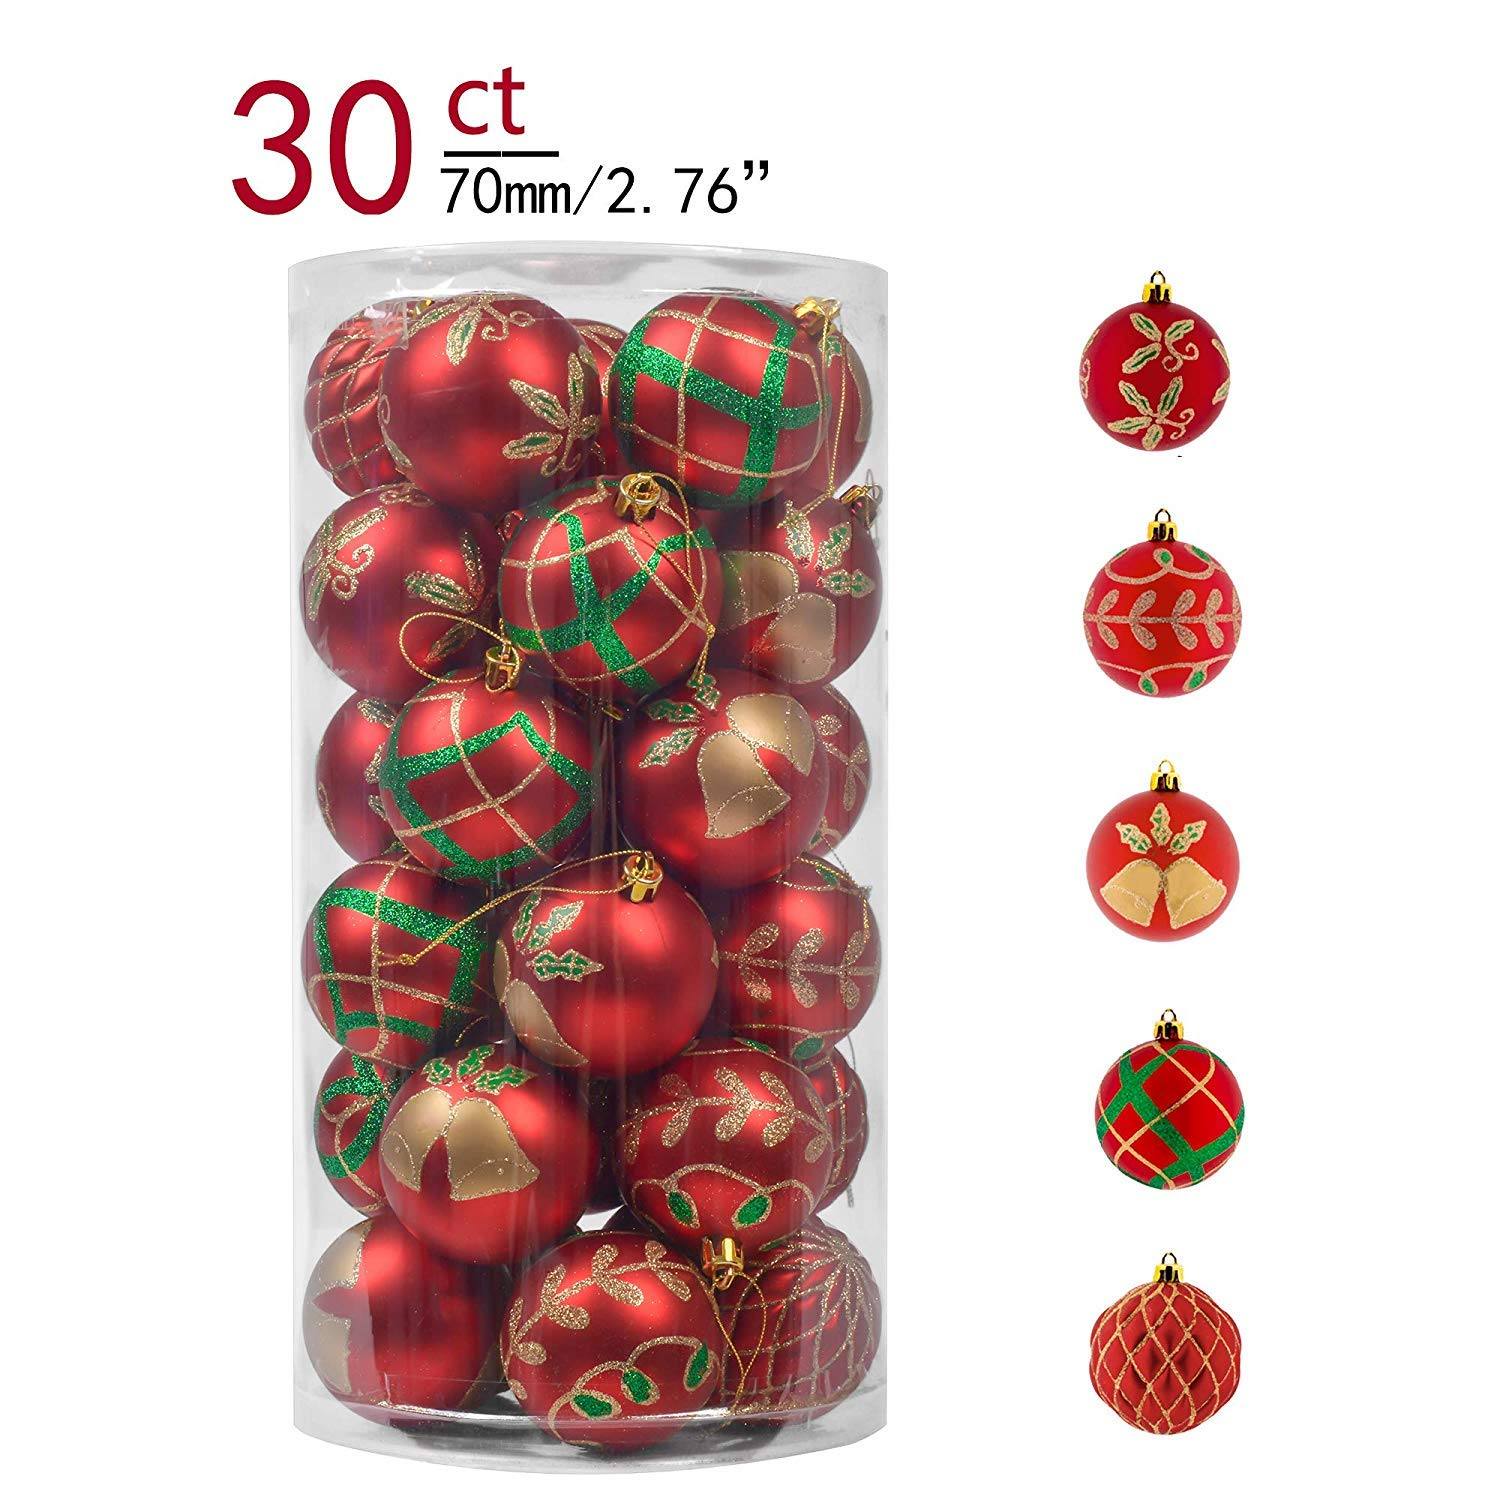 Valery Madelyn 30ct 70mm Red Christmas Shatterproof Ball Ornaments Christmas Tree Decoration, Themed with Tree Skirt (Not Included)